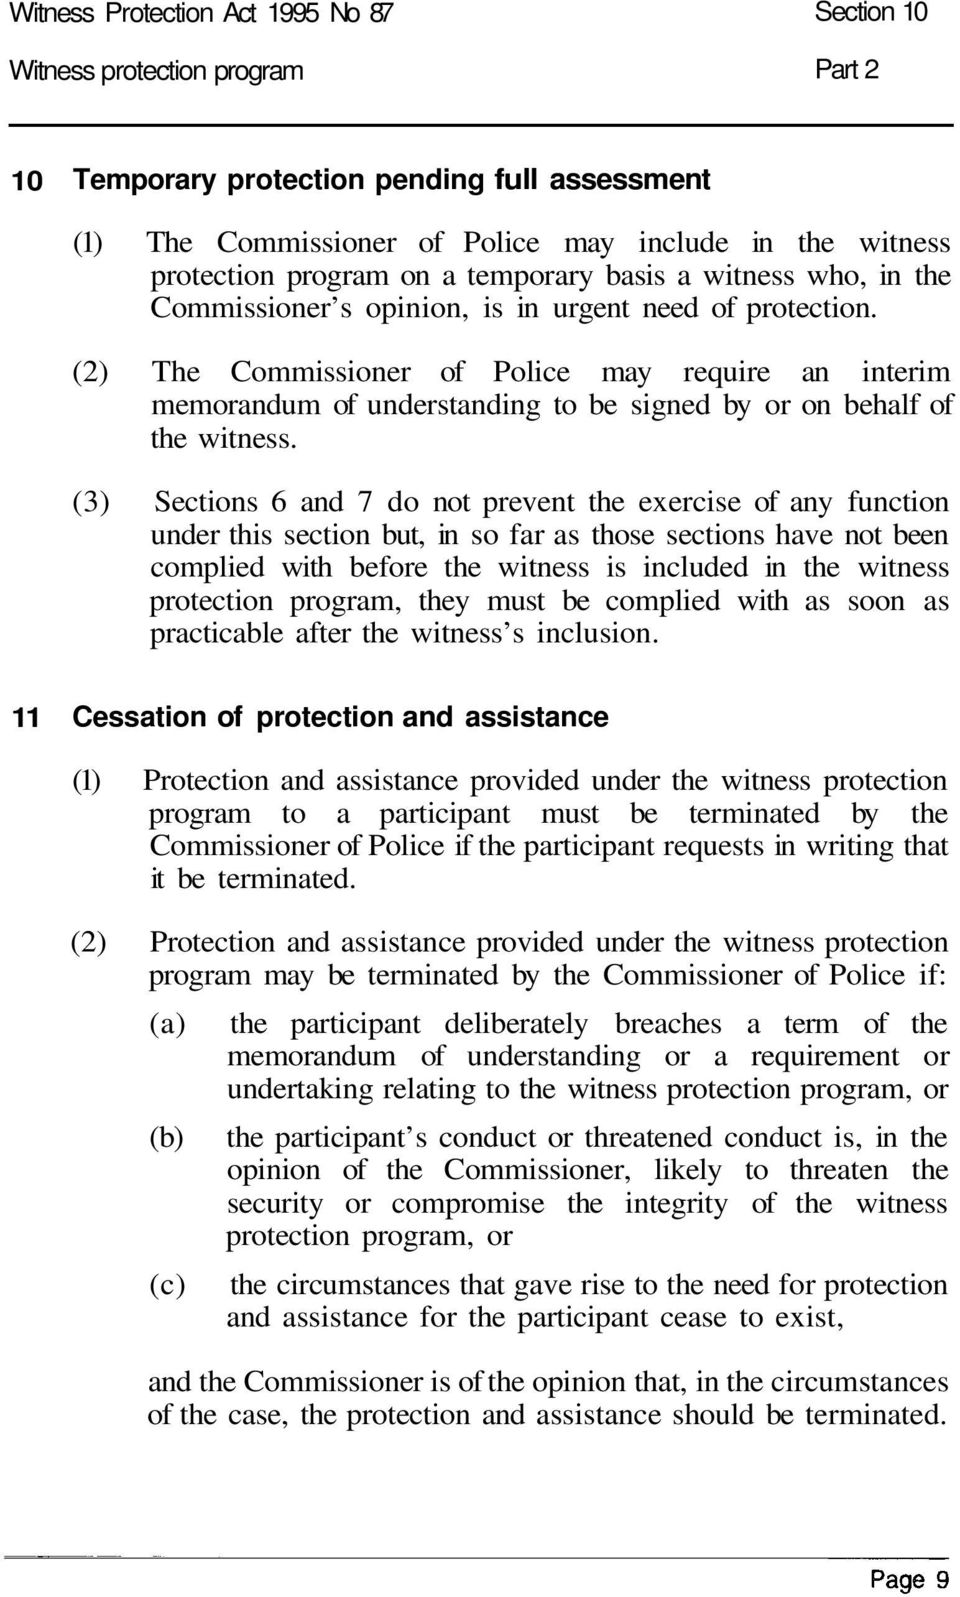 (2) The Commissioner of Police may require an interim memorandum of understanding to be signed by or on behalf of the witness.